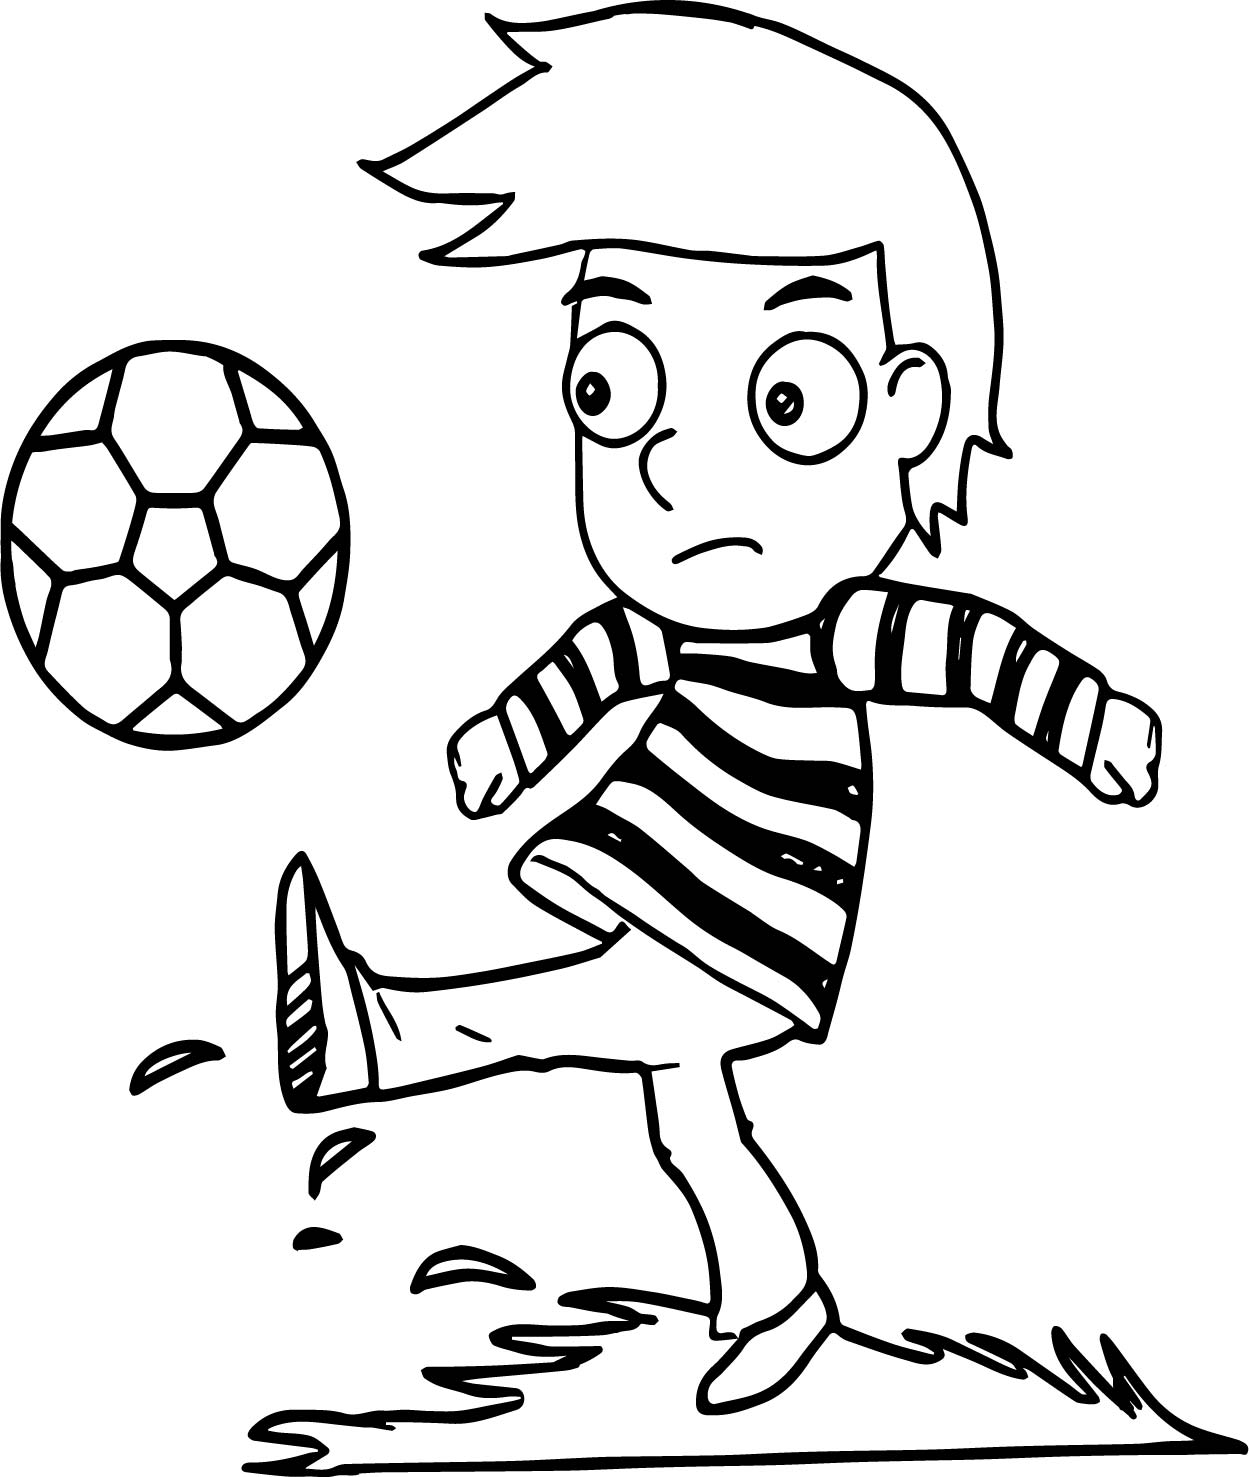 boy playing soccer playing football coloring page wecoloringpage